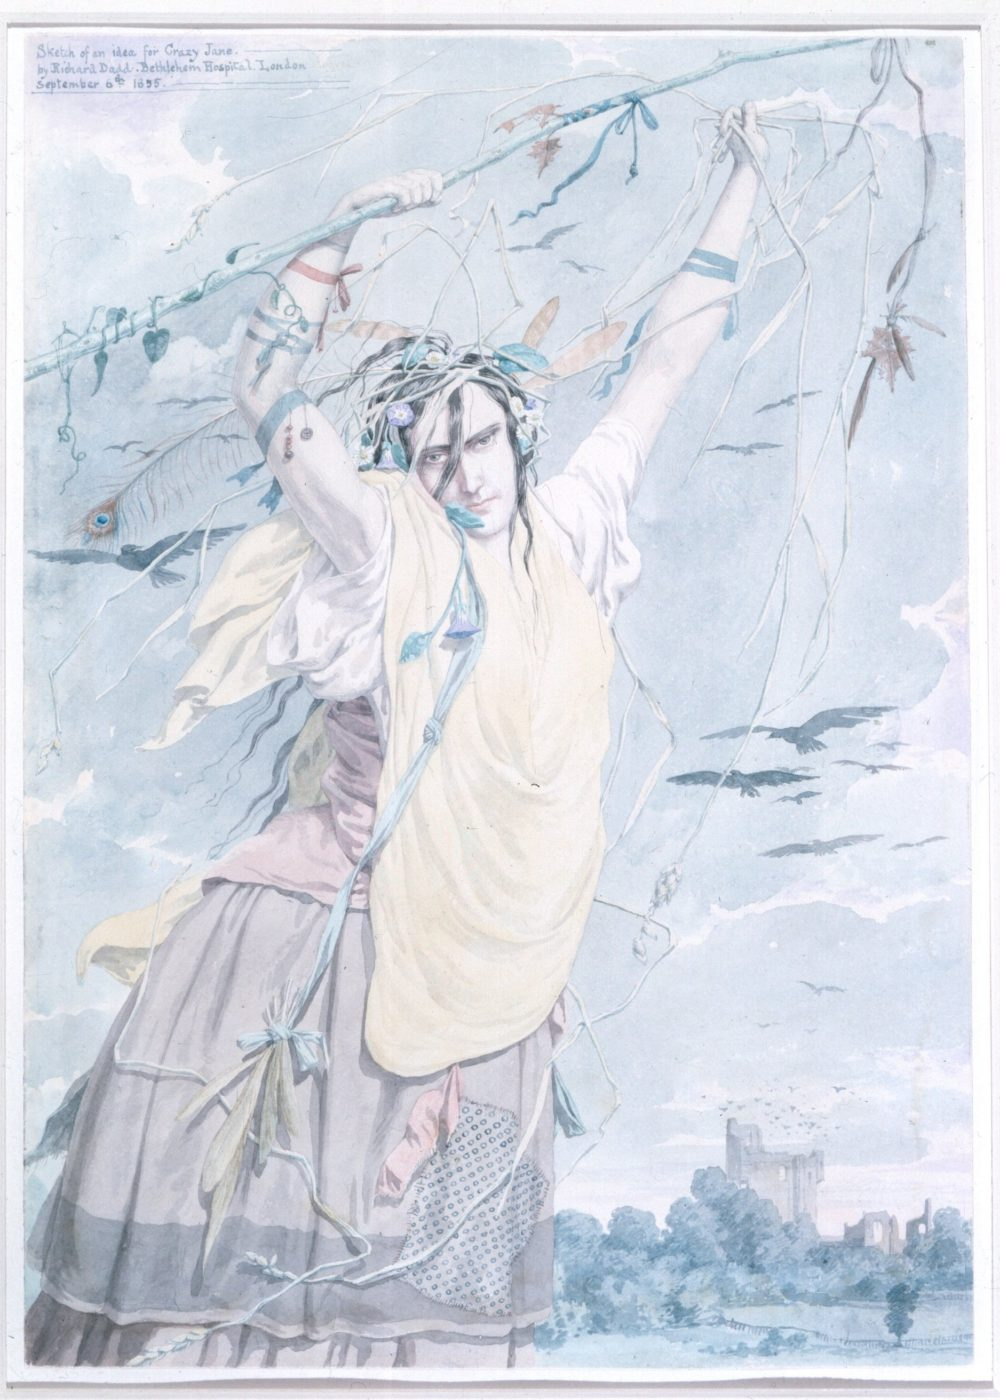 Watercolour titled Crazy Jane (1855) by Richard Dadd